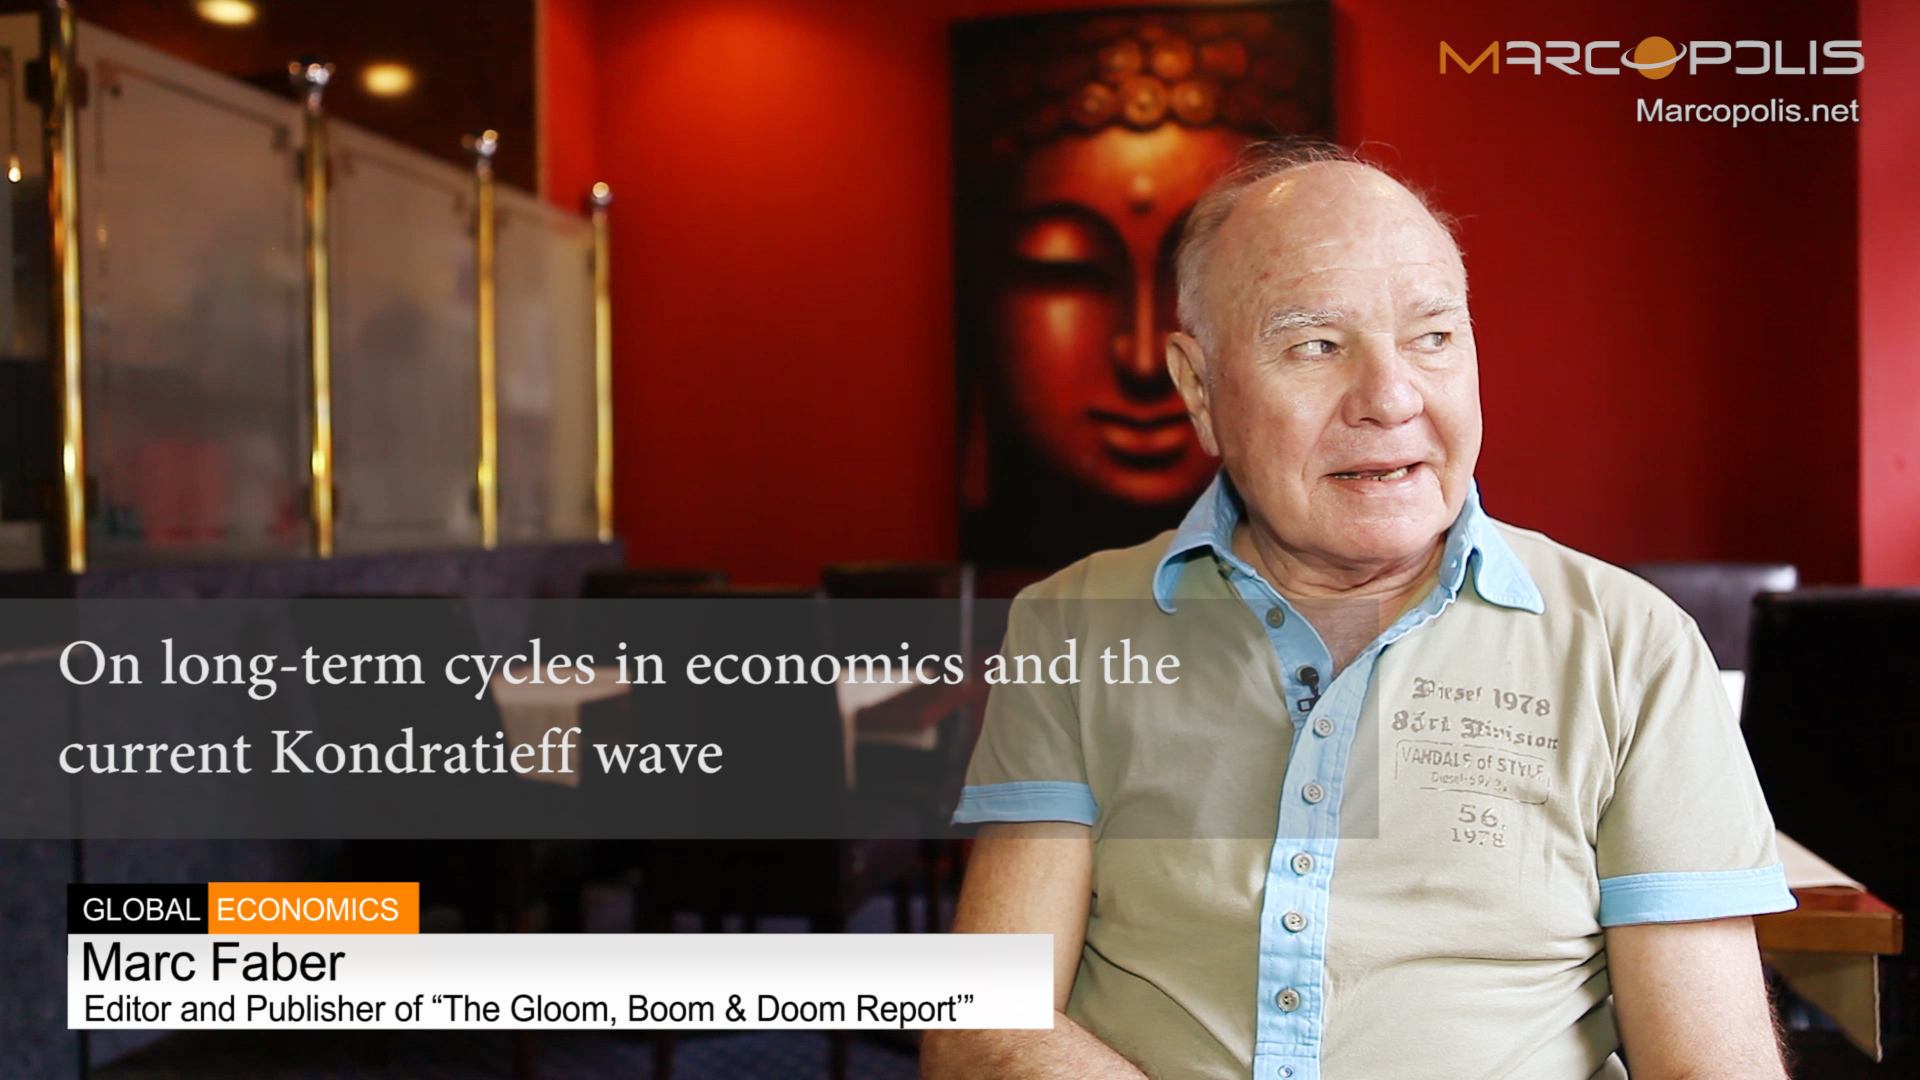 Marc Faber on Kondratieff wave